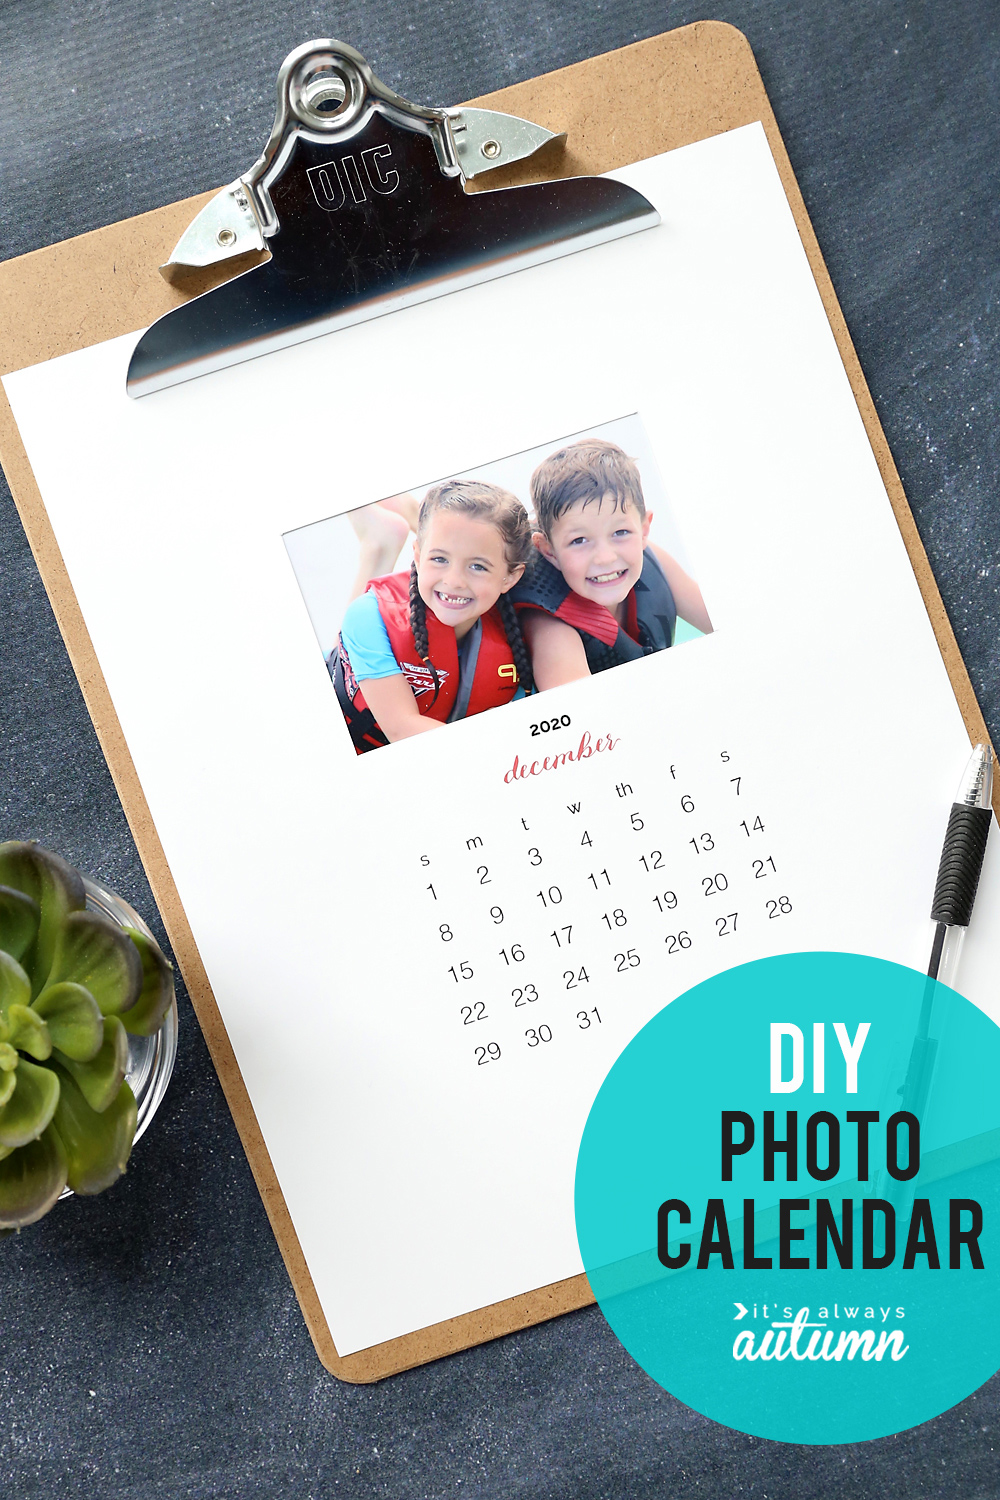 PERSONALISED Desk DESKTOP CALENDAR Calender Gifts for Birthday 2019 Present Xmas